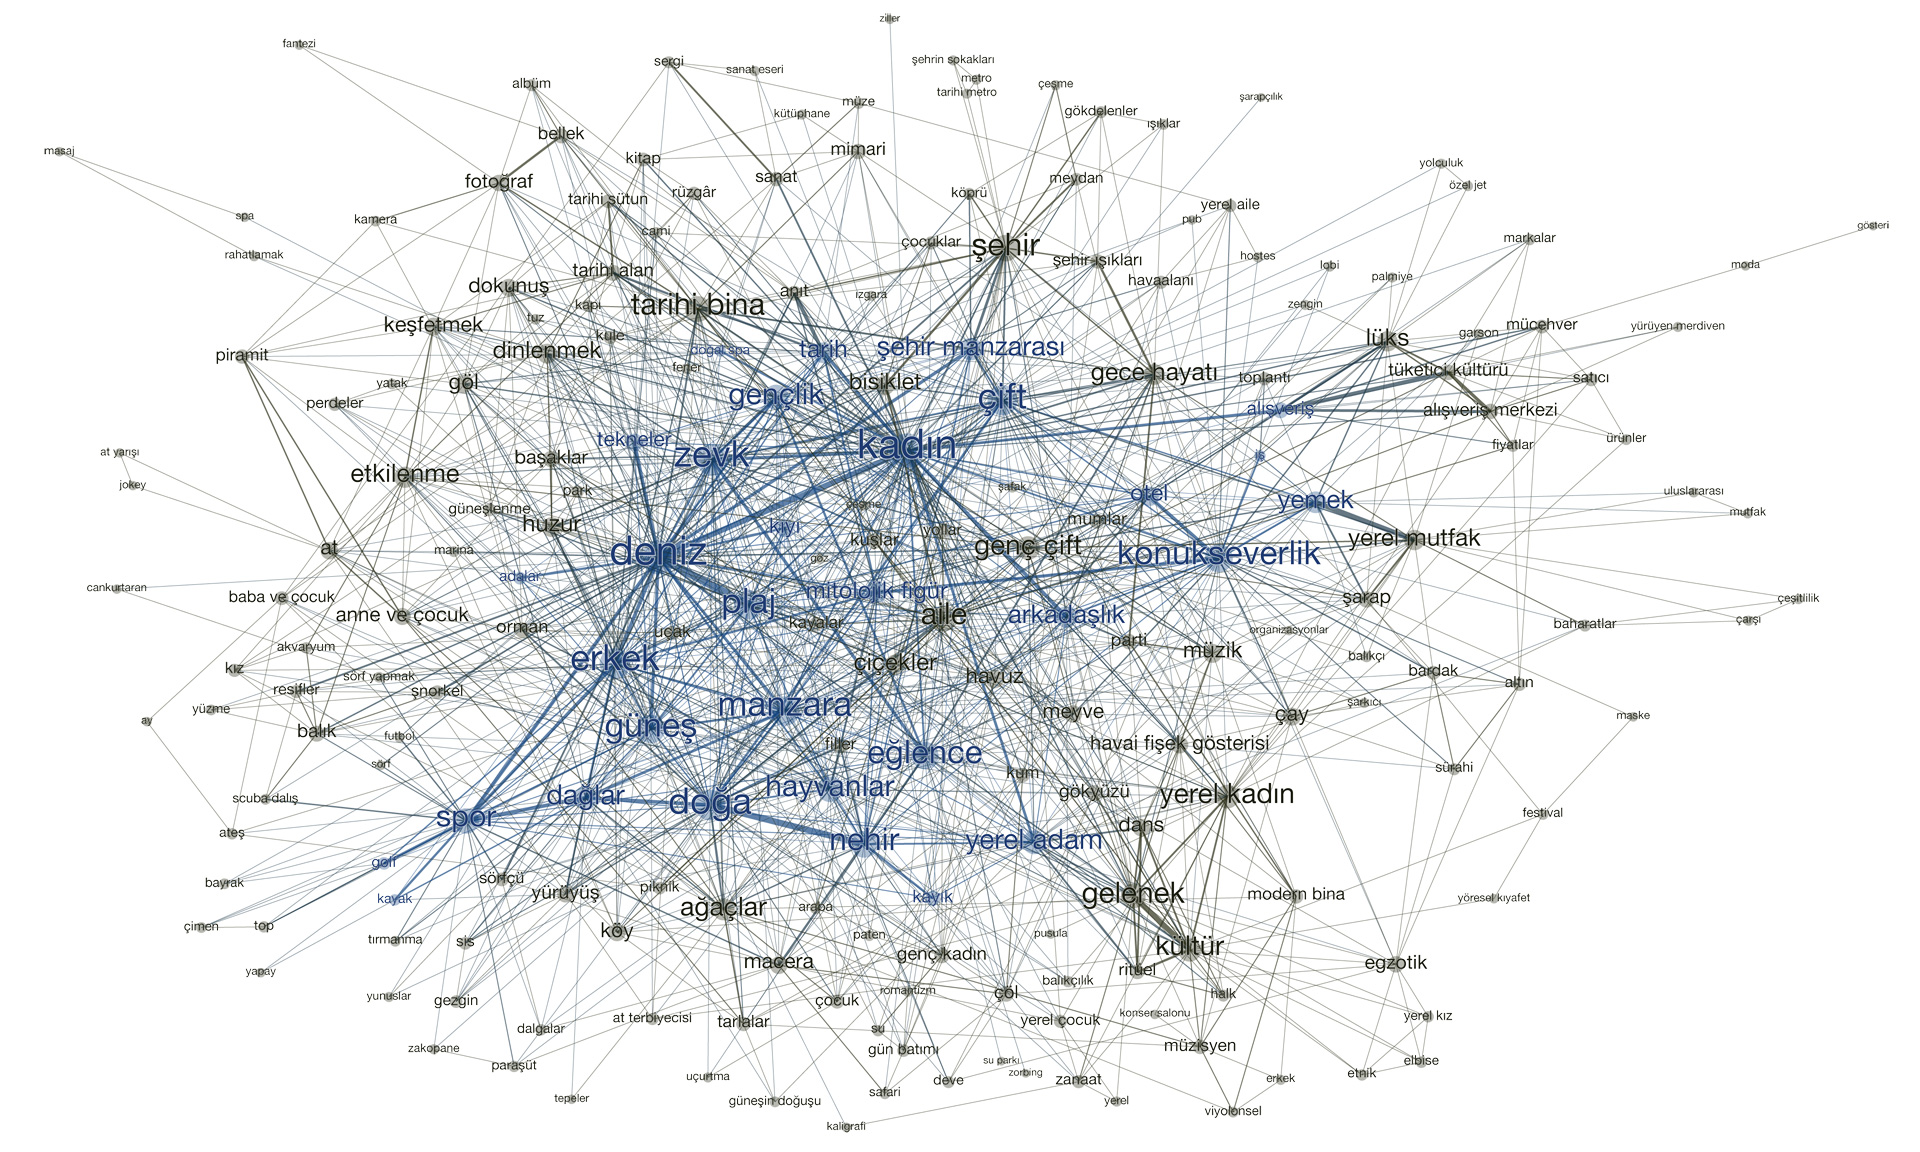 Network map of concept tags in Turkish prepared for Istanbul Modern Museum.